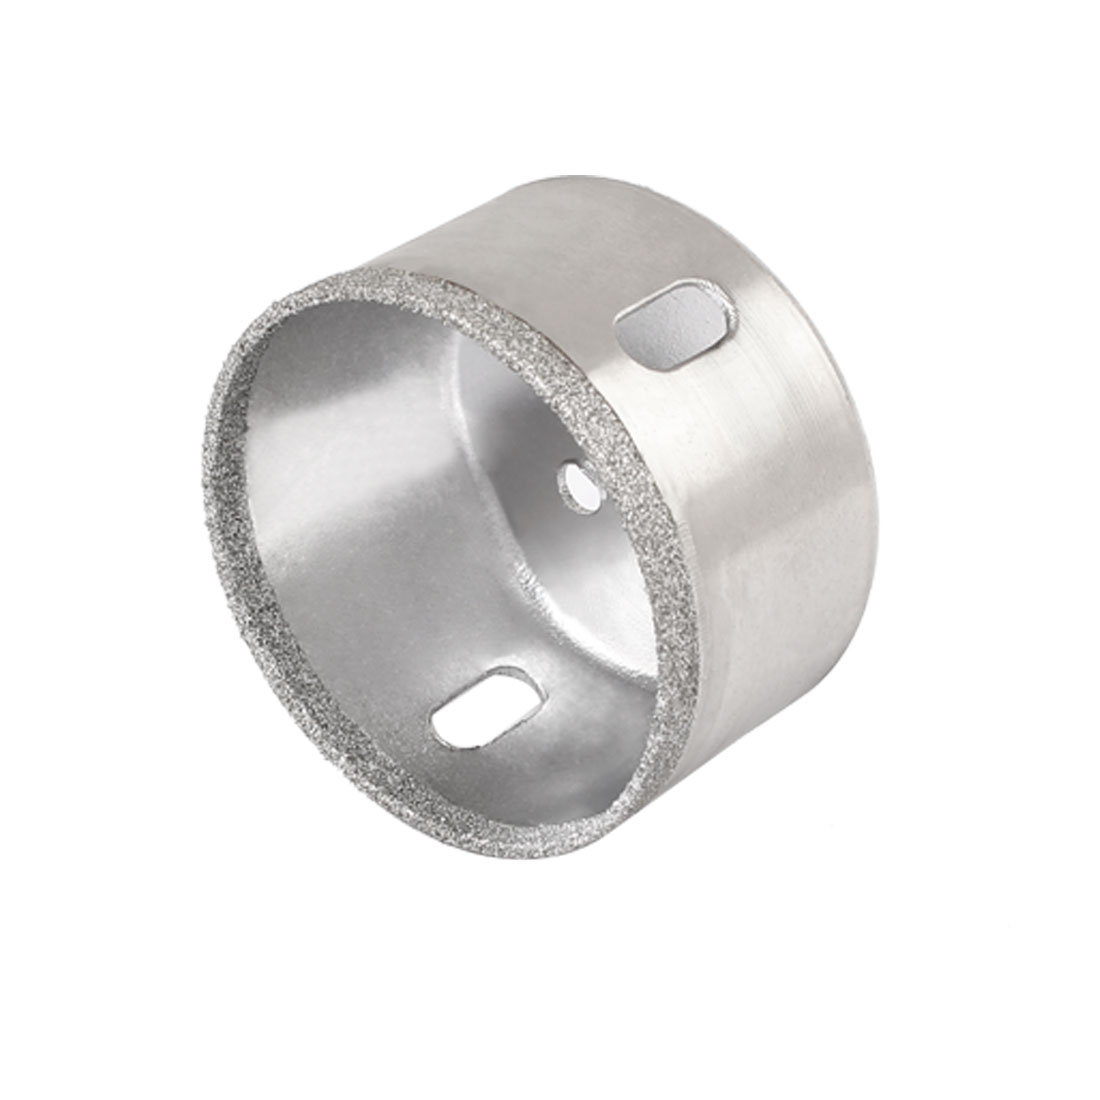 Diamond Tipped Round Shank 53mm Diameter Marble Drilling Hole Saw Tool